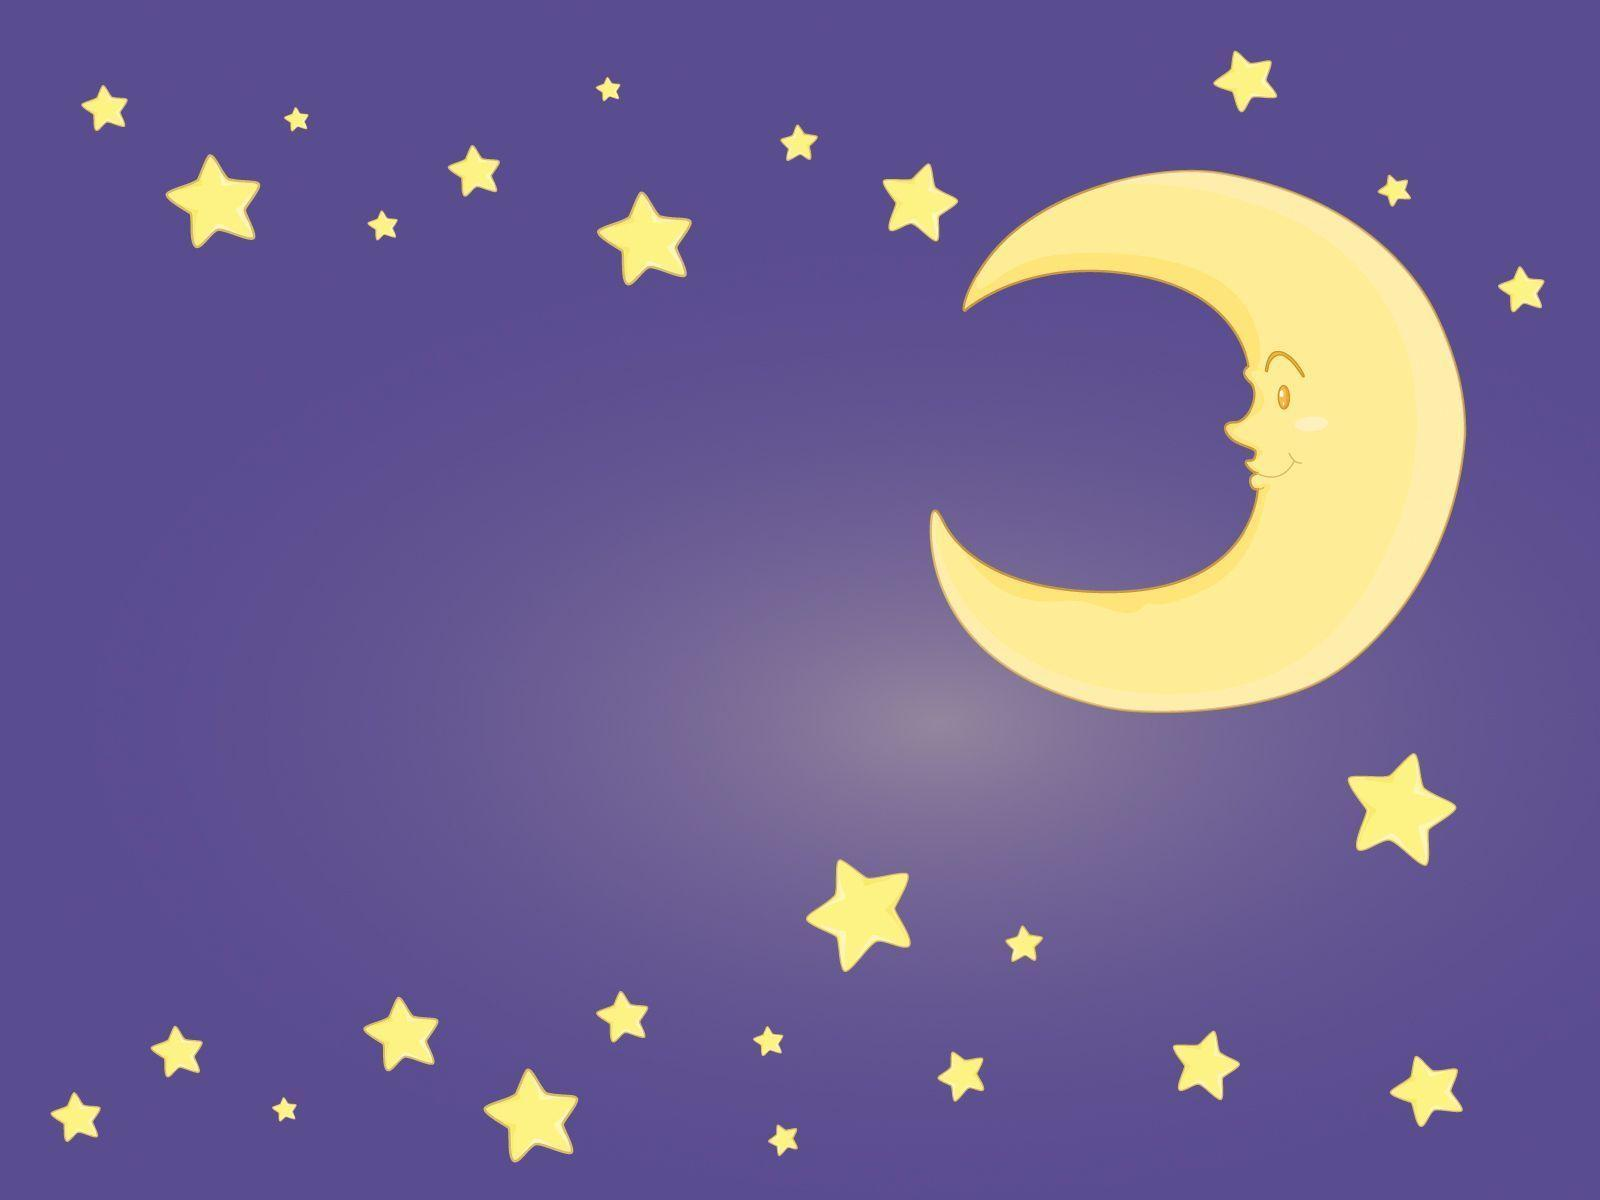 Moon And Stars Backgrounds